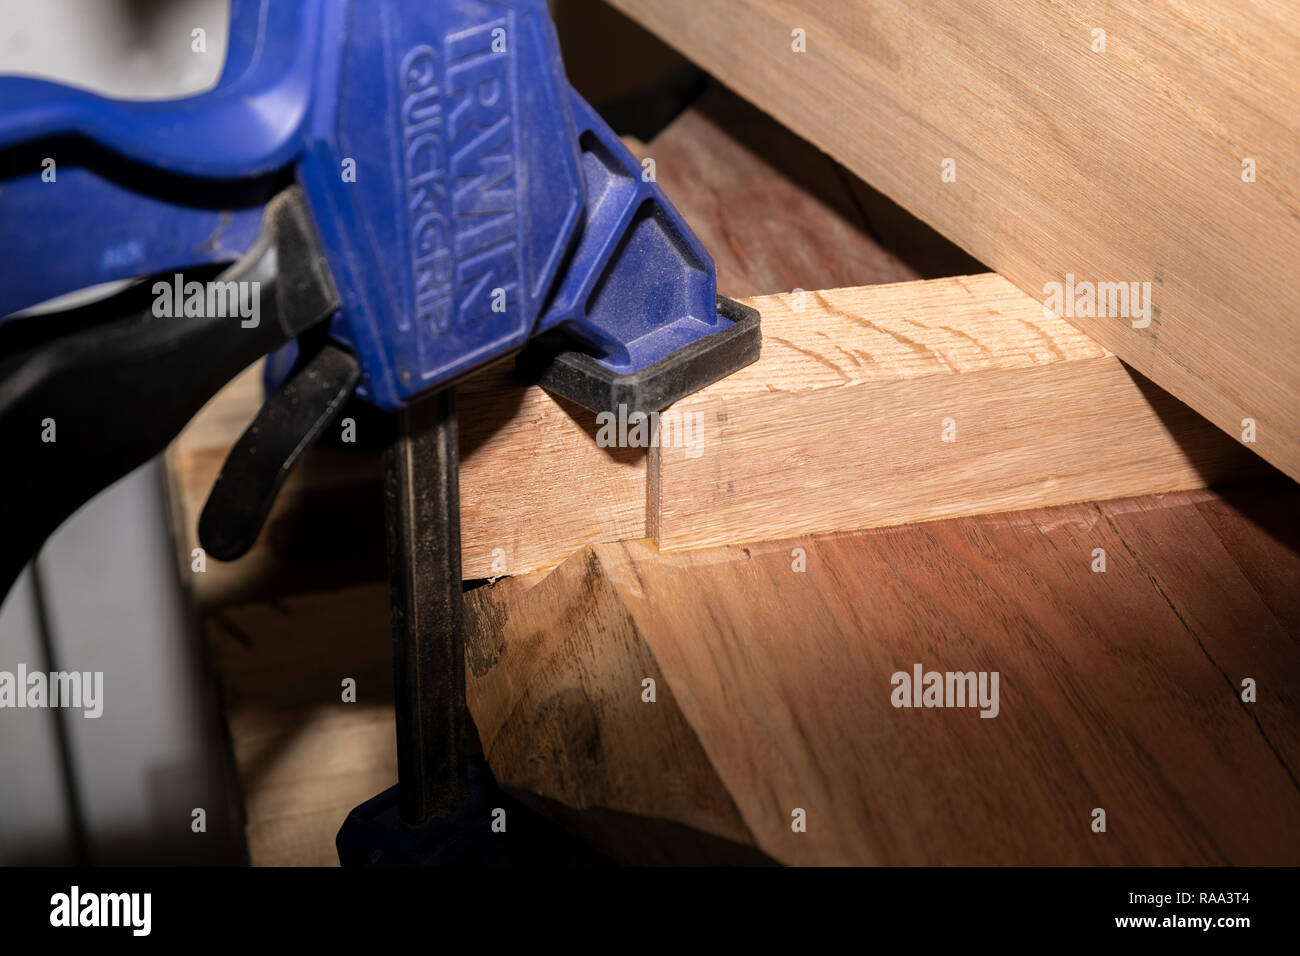 Clamping wood - Stock Image